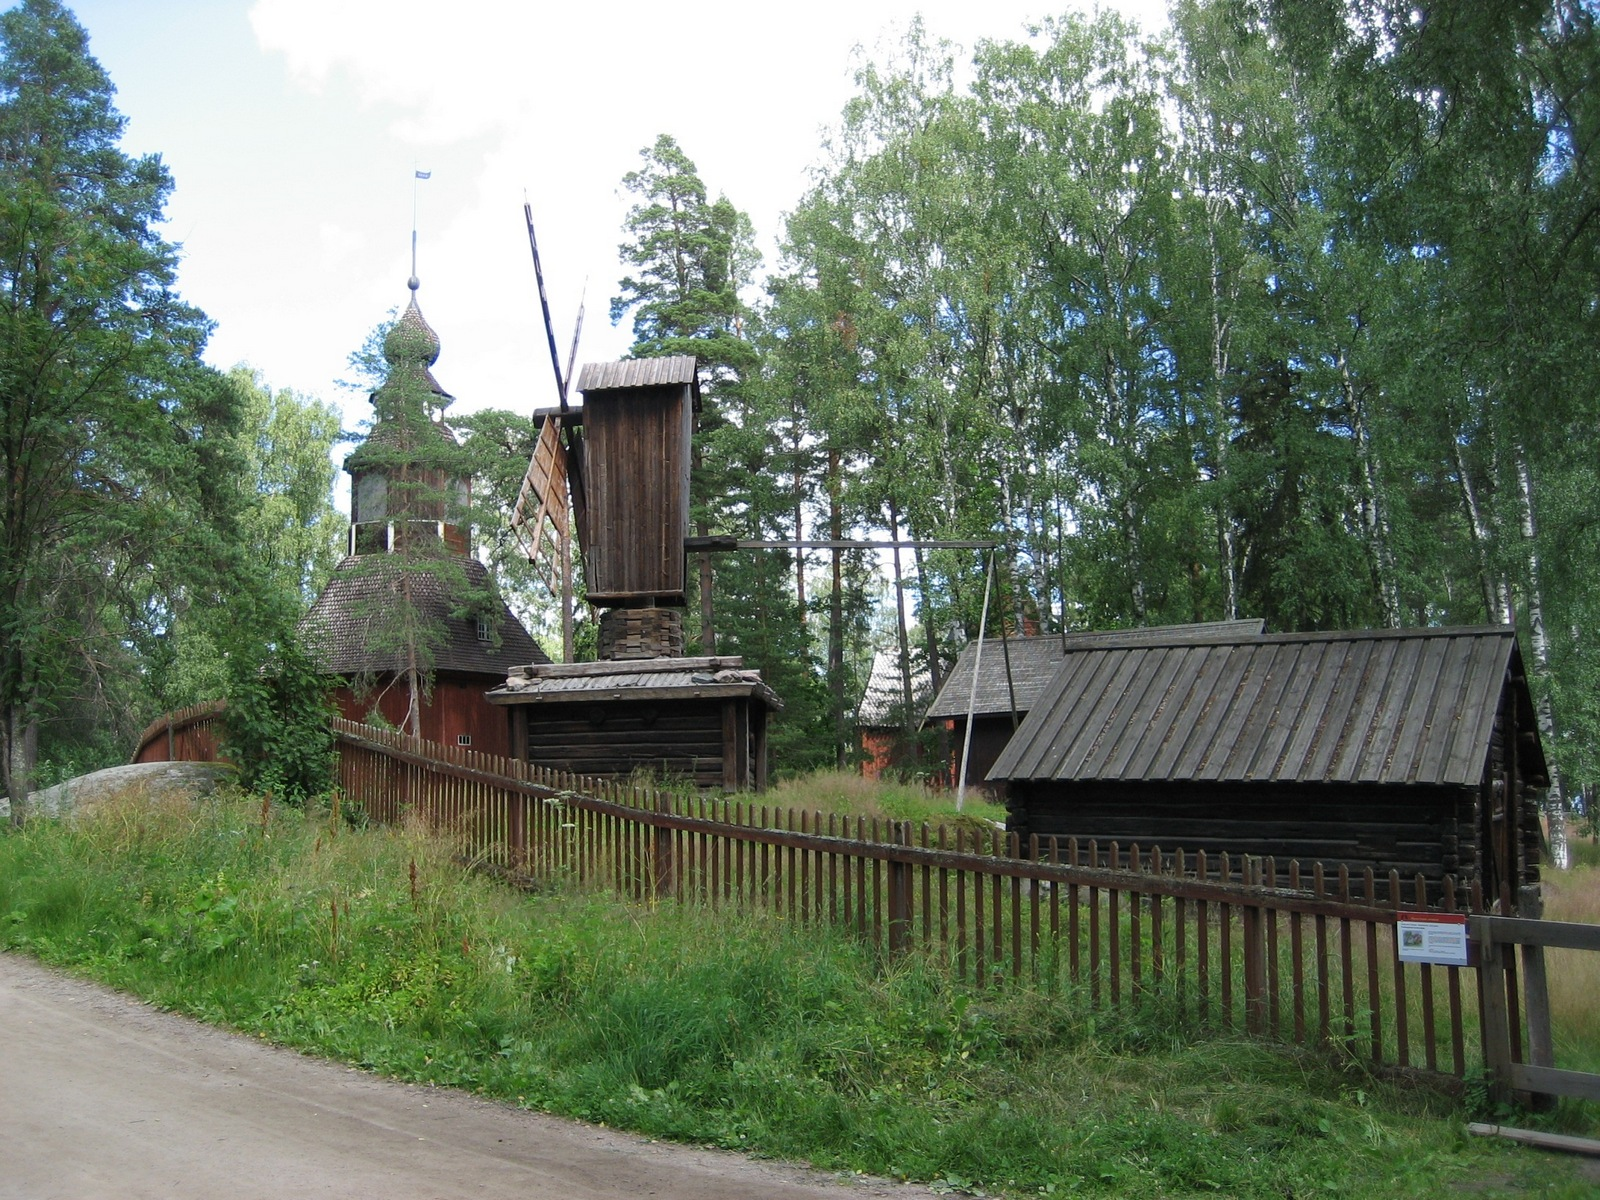 Seurasaari Open-air Museum - Attractions/Entertainment - Seurasaari, FI